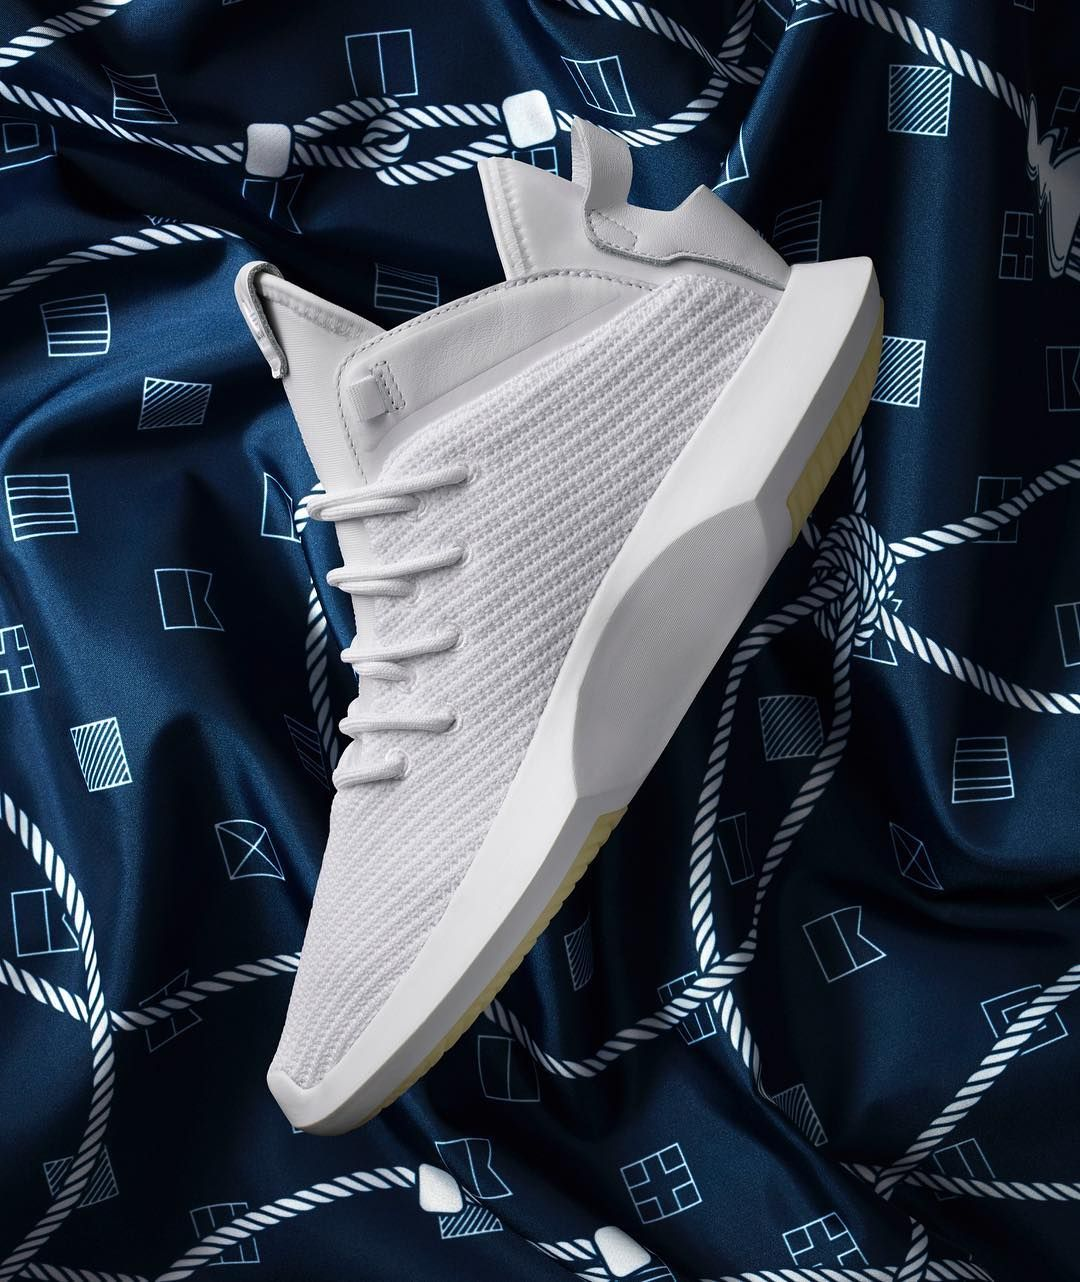 Pin by B?o on Cop or drop in 2019 | Adidas sneakers